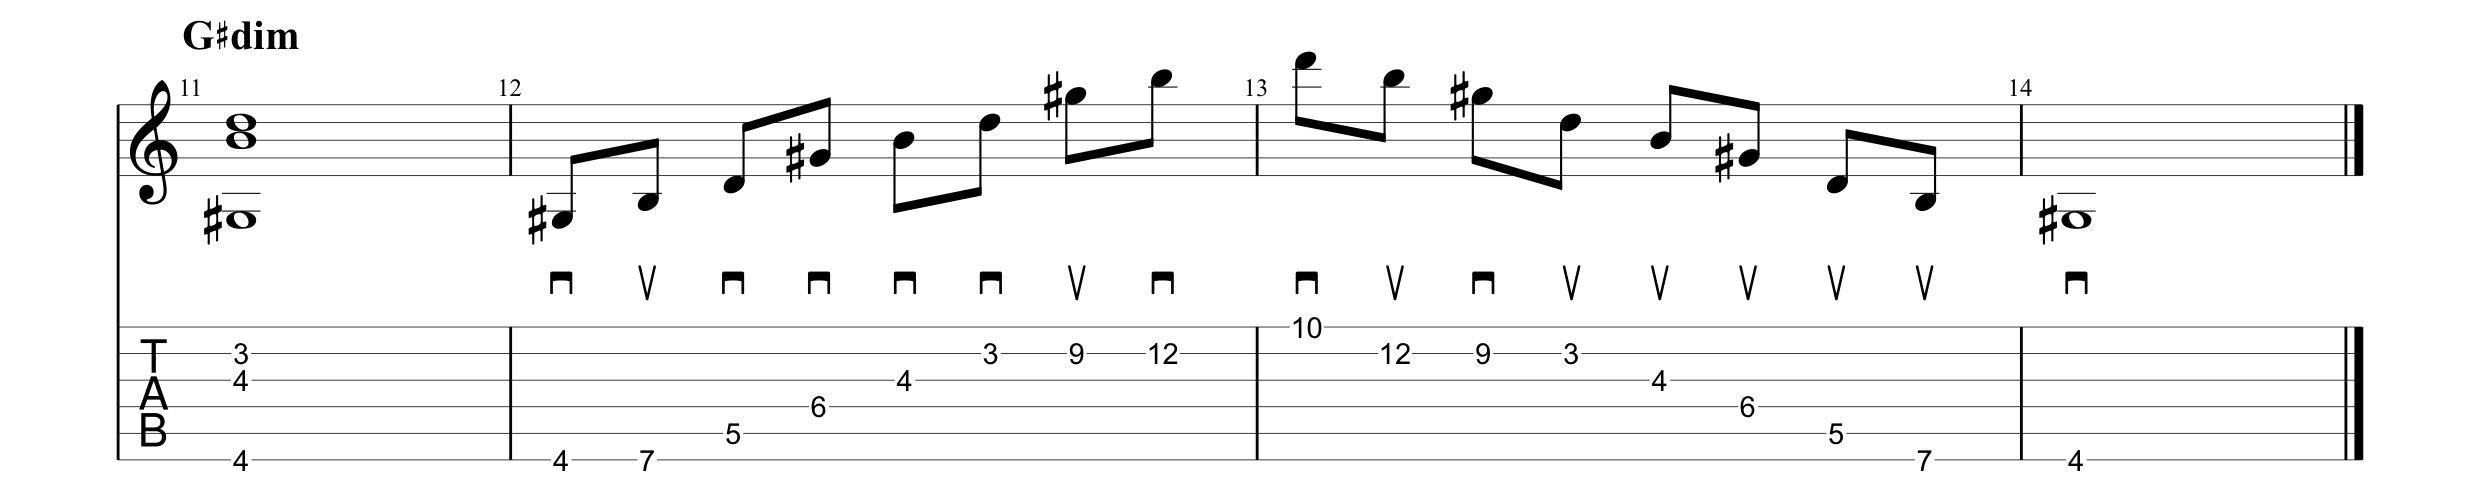 G# diminished arpeggio.png